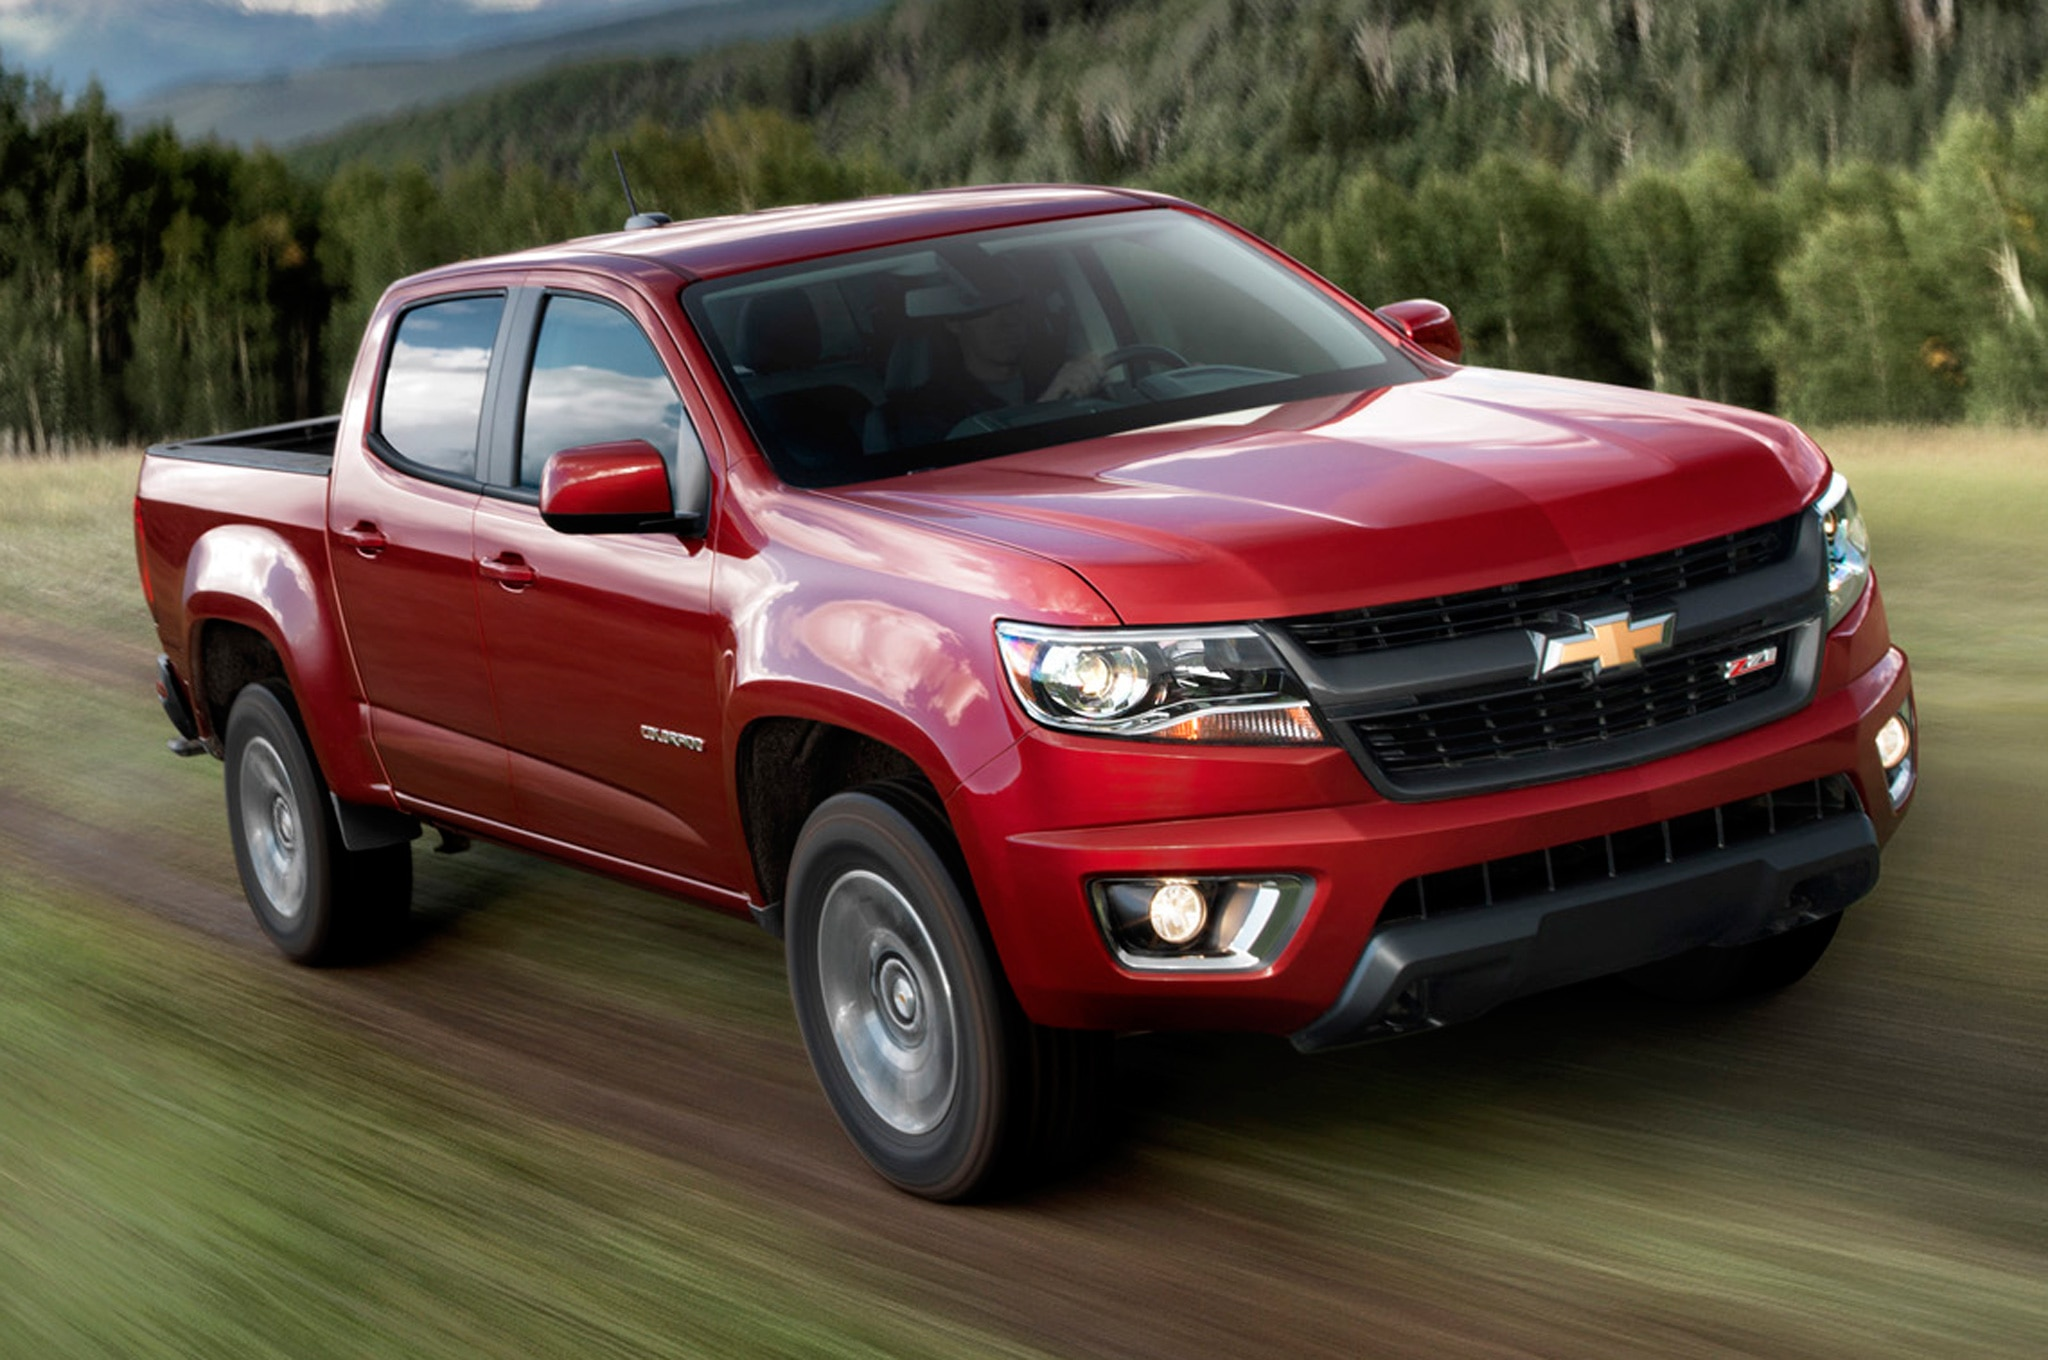 2015 Chevrolet Colorado Z71 Crew Cab Front Three Quarters View1